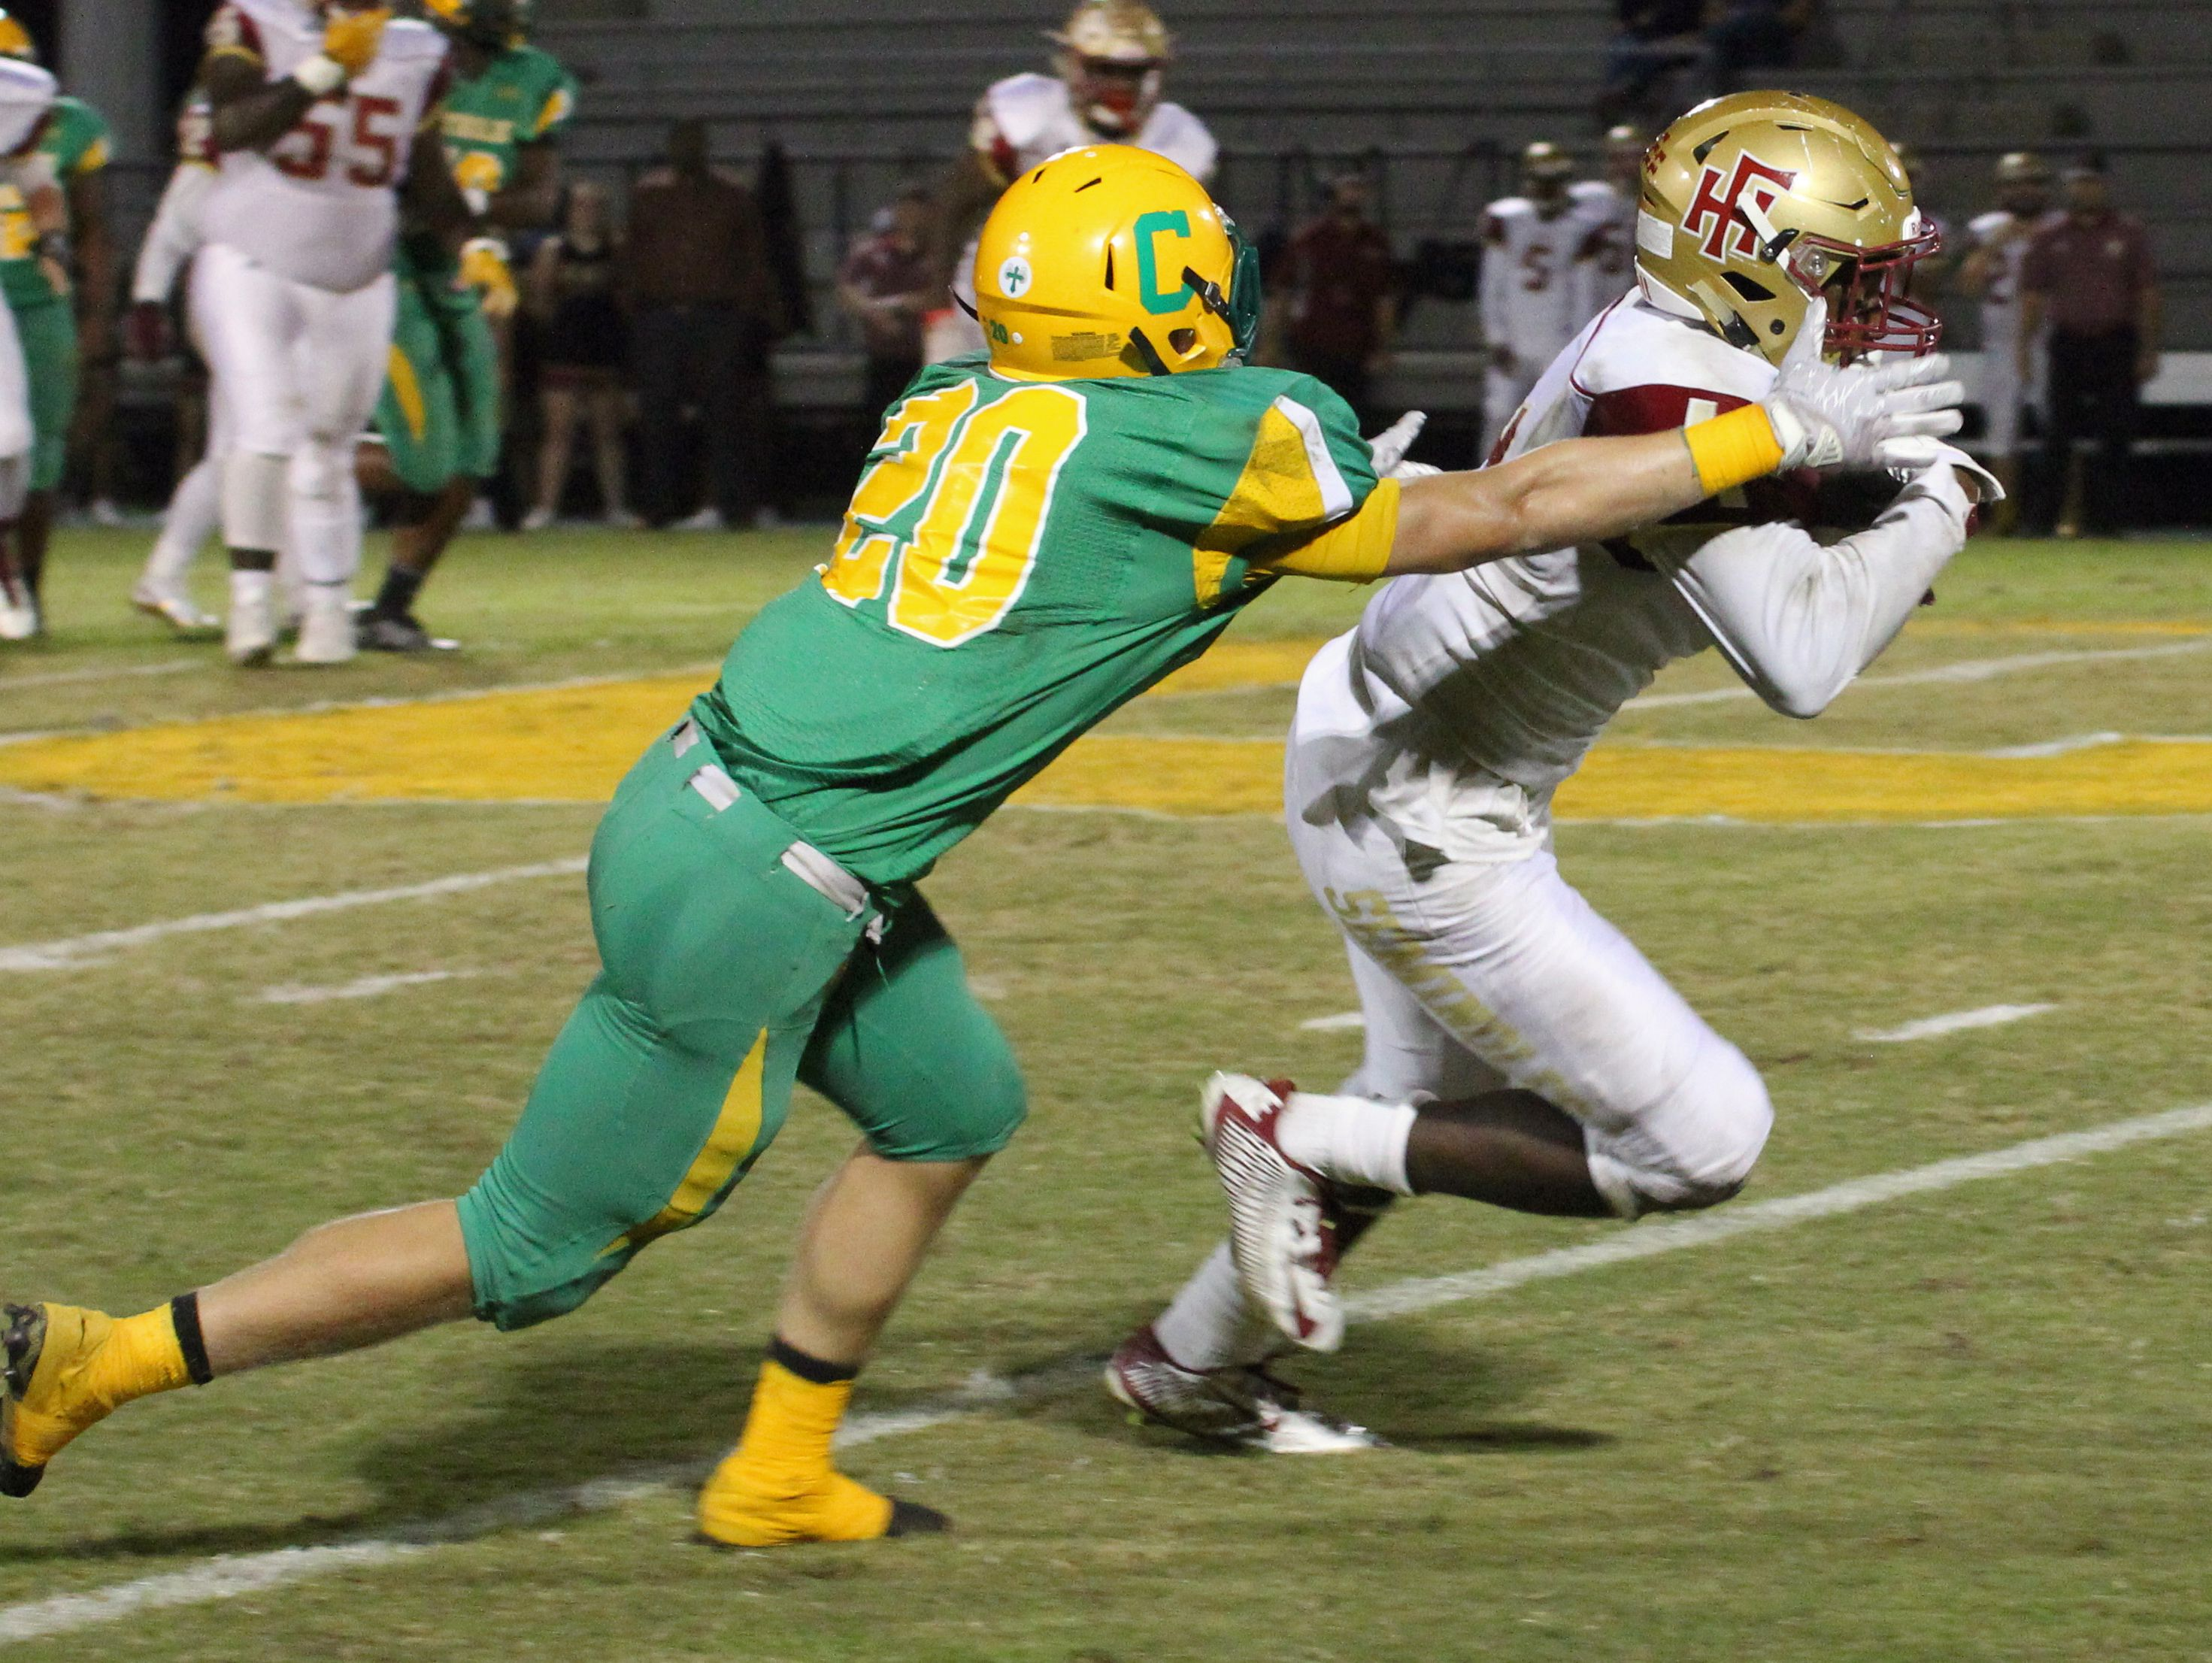 Catholic's Collin Acromite (20) zeros in on Florida High's Kevin Sawyer in first half action.